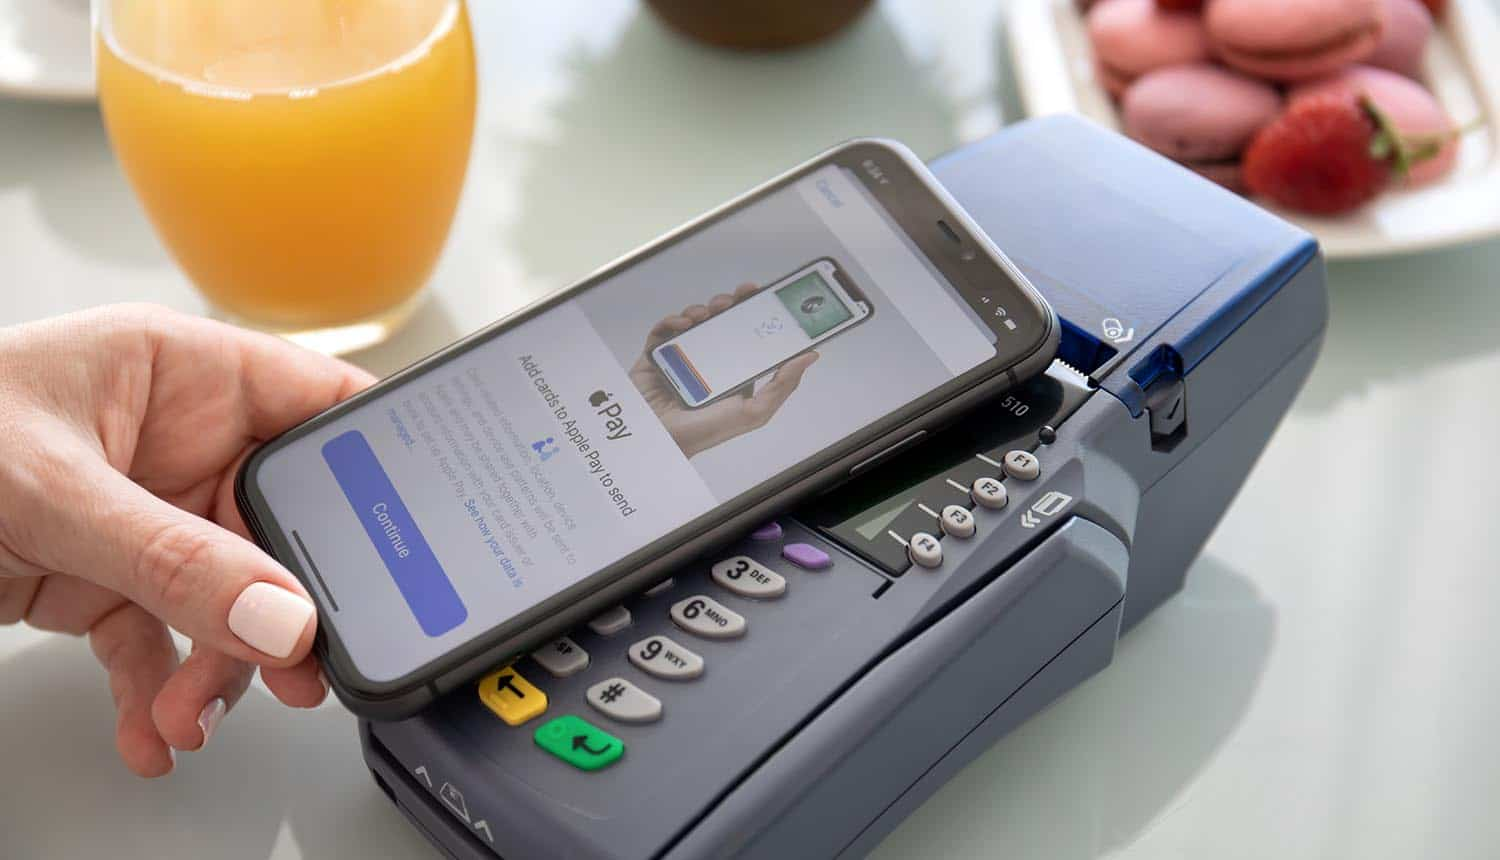 Waman holding iPhone with Apple Pay on the screen showing payment fraud with Visa card